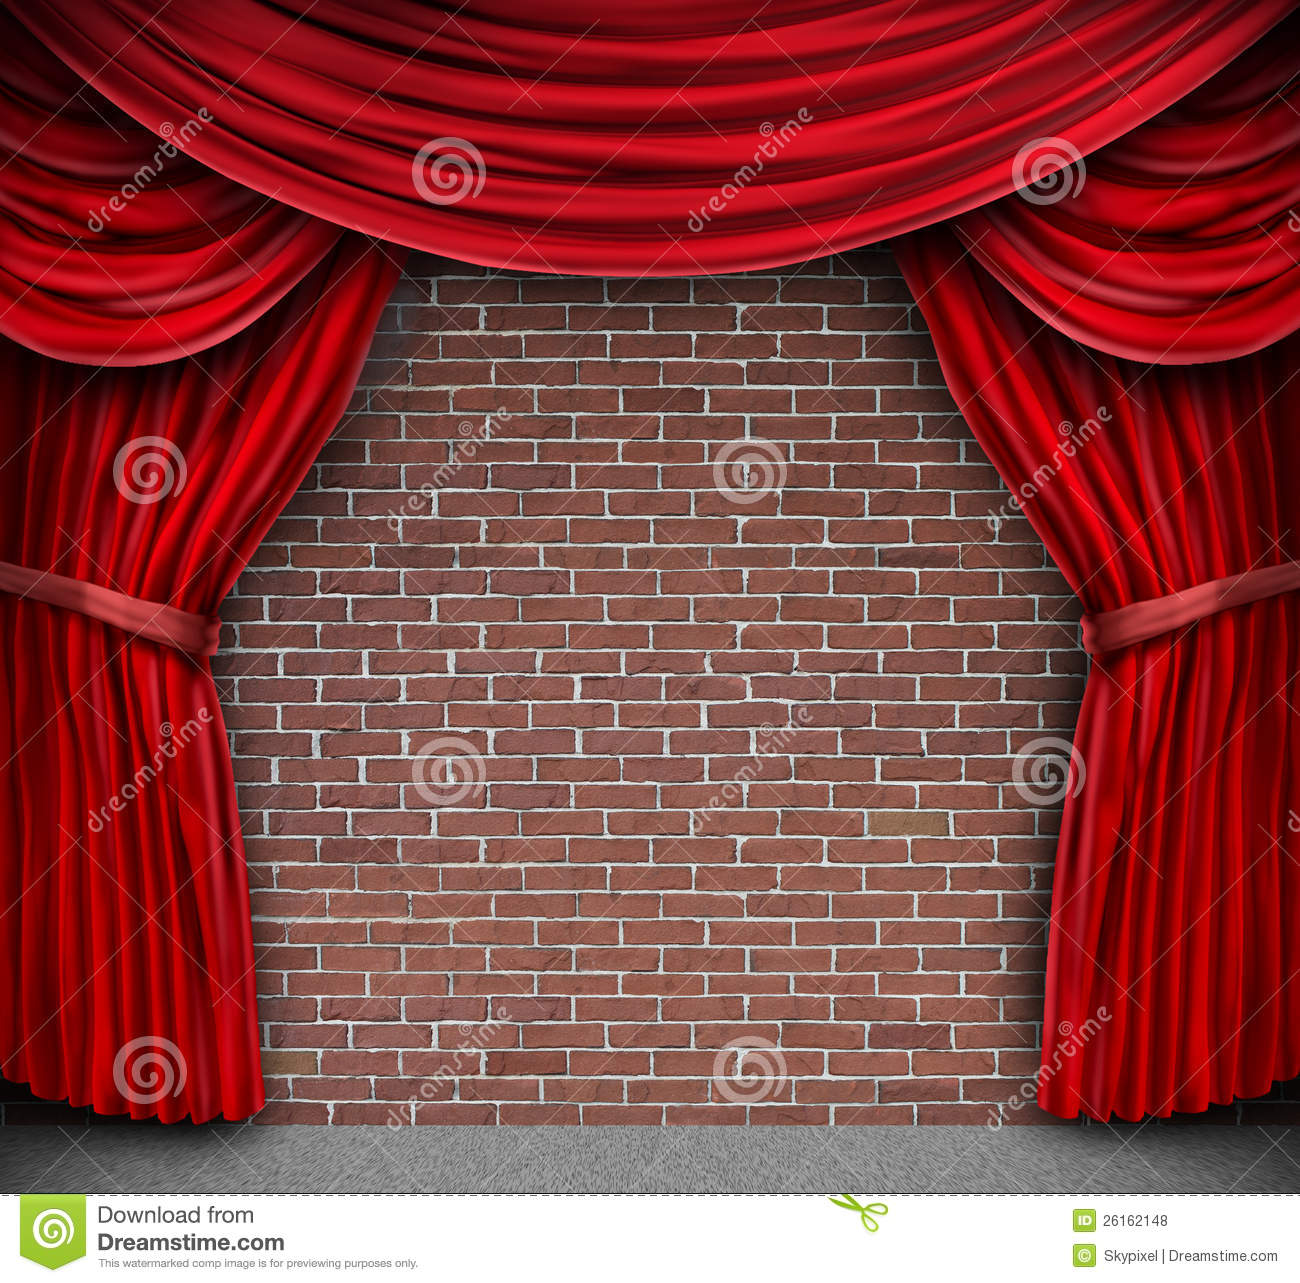 Red Curtains On A Brick Wall. Red Curtains On A Brick Wall Royalty Free Stock Photos   Image